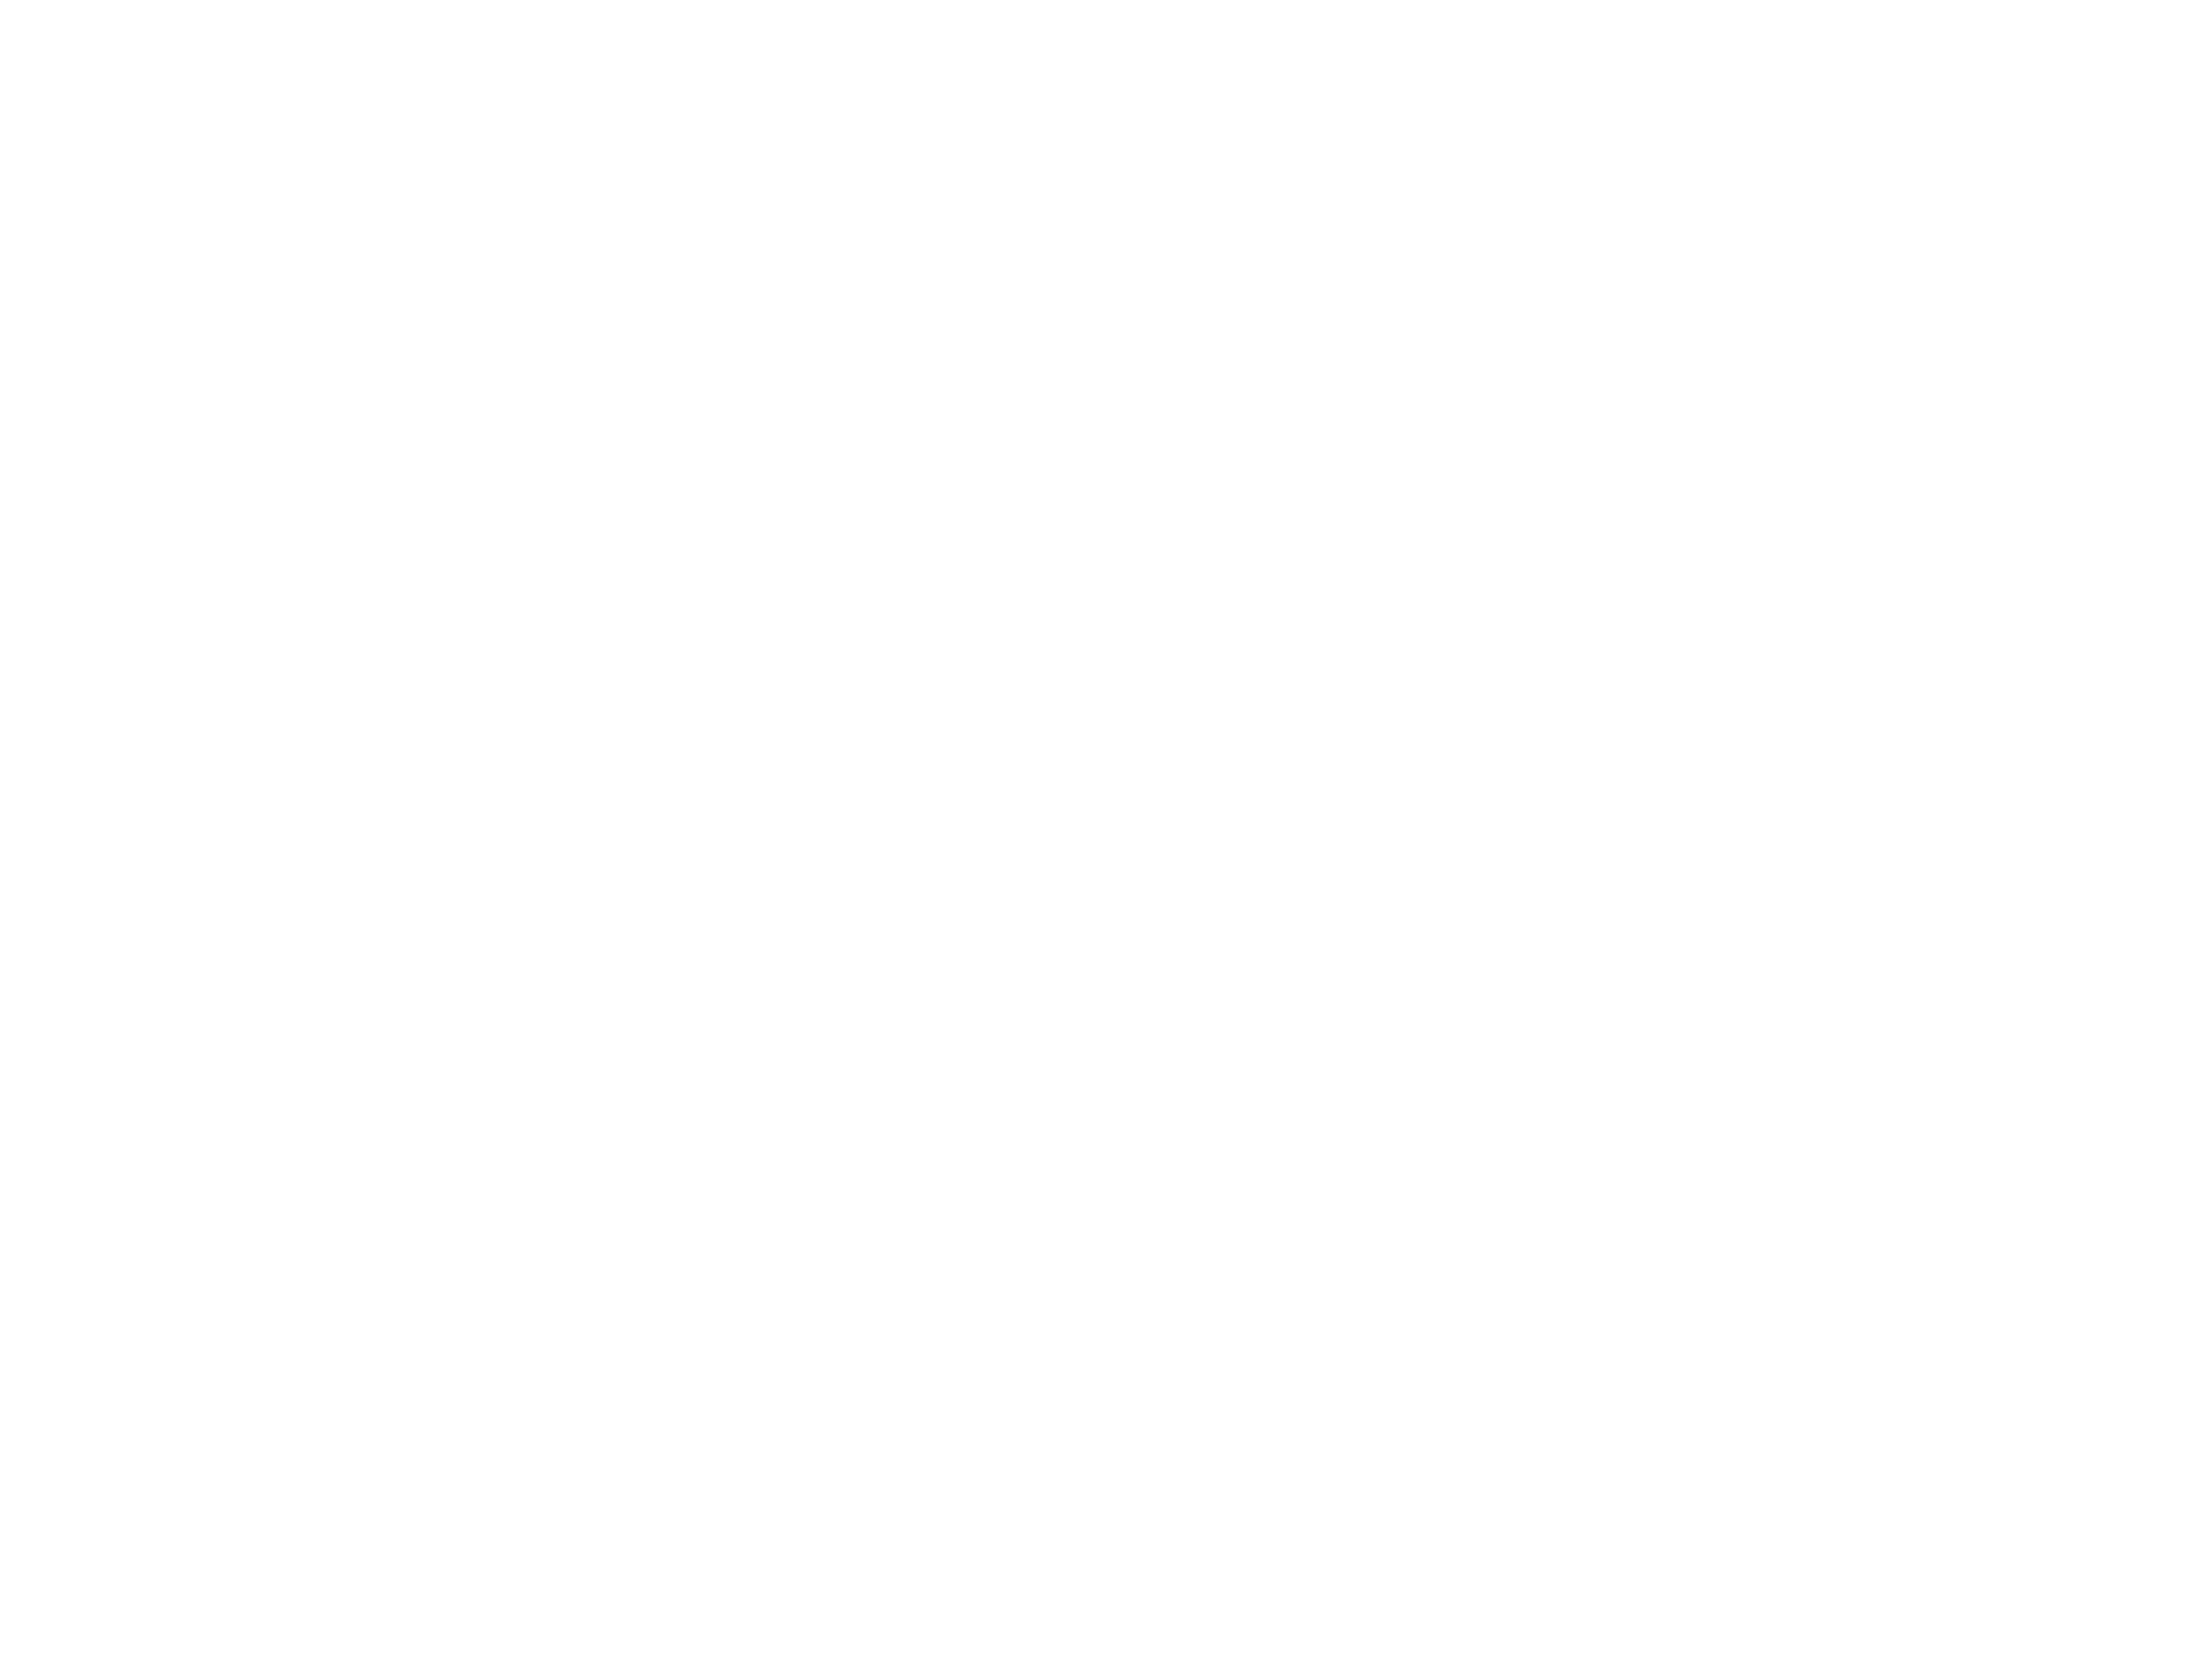 Trusted Quality for 40 Years